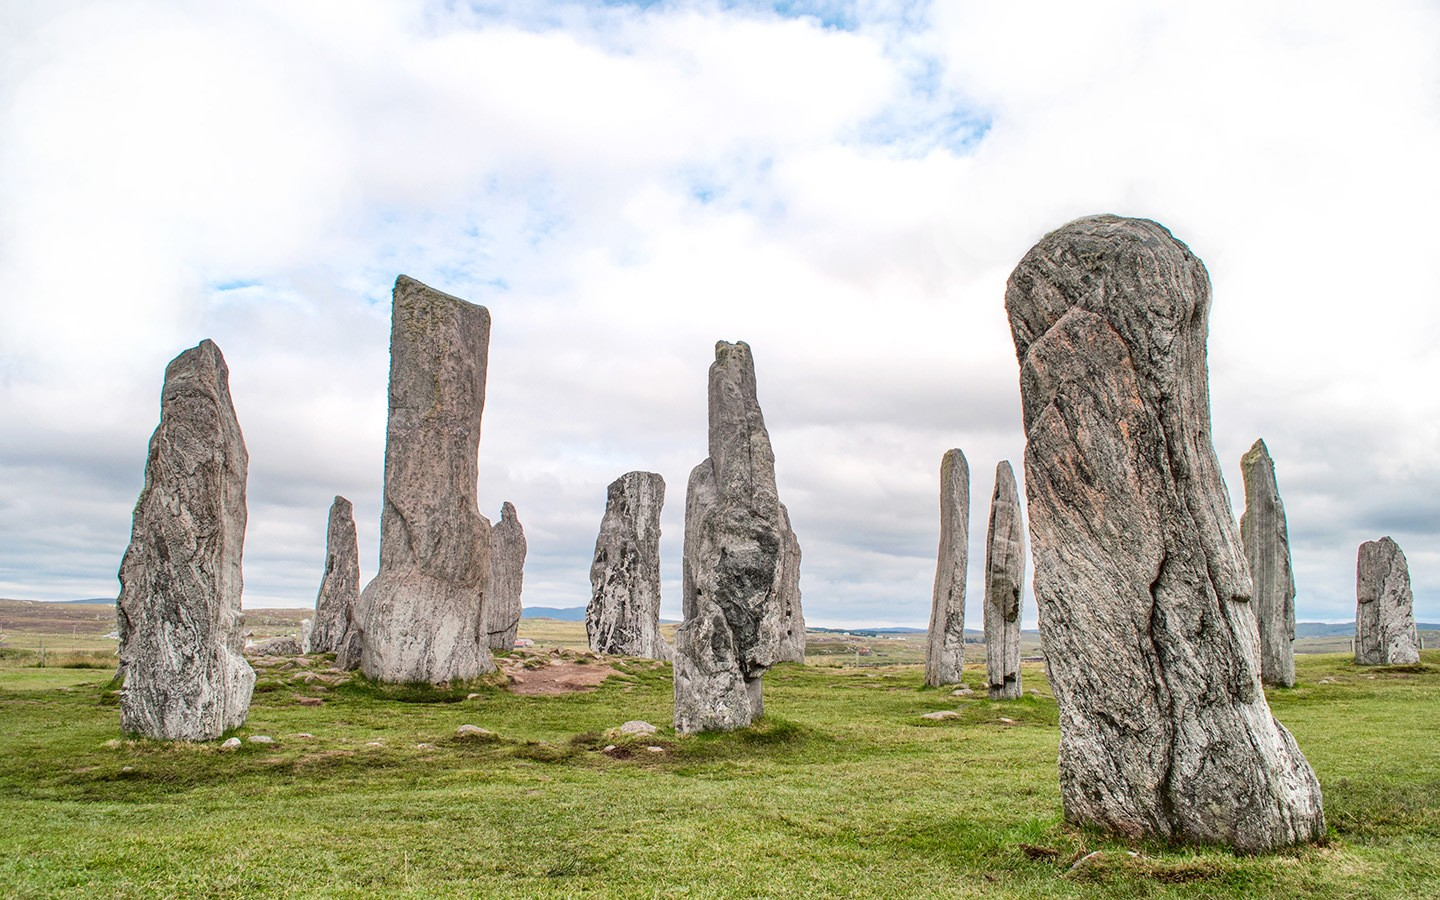 The historic Callanish Stones in the Outer Hebrides, Scotland